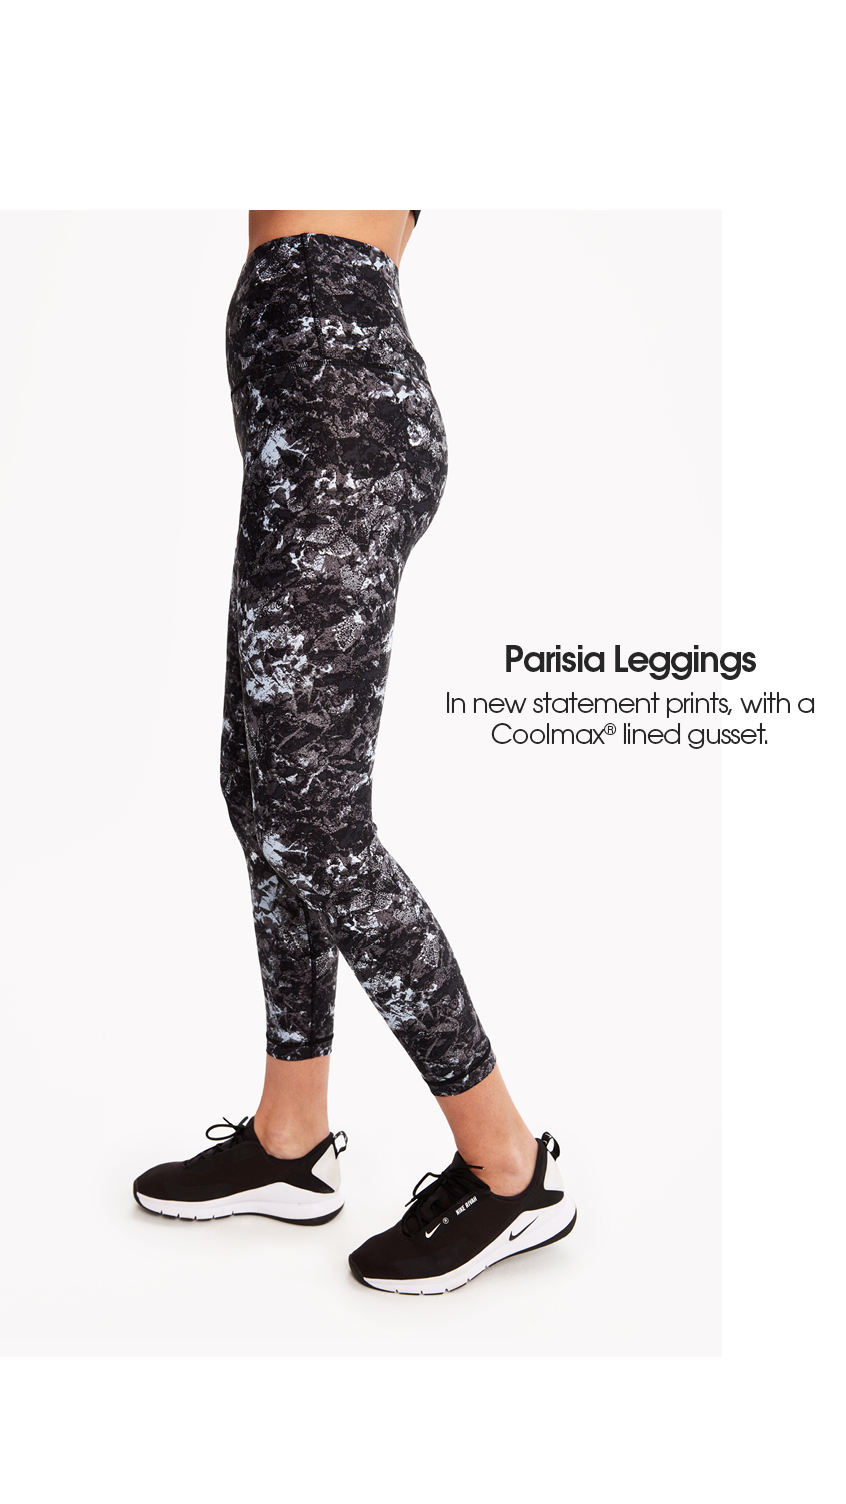 04b8a867af1c4e This high waist legging is lined with coolmax® for instant moisture  control. 4 way stretch gives you the freedom to move, bend, and stretch  however you ...